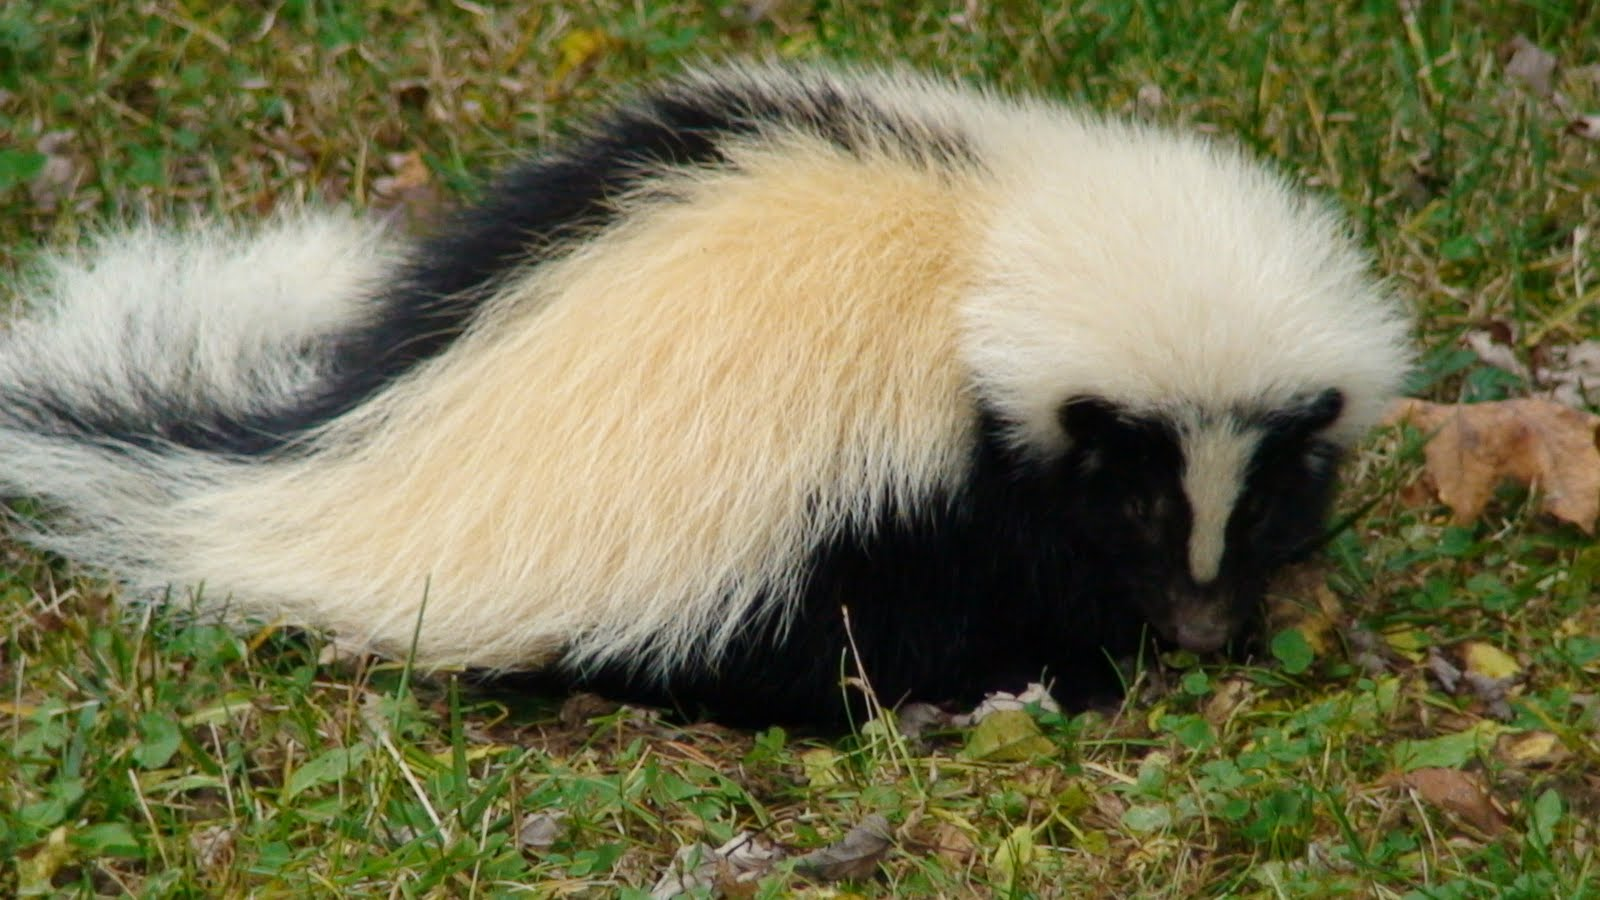 Skunk | The Biggest Animals Kingdom Raccoon With Rabies